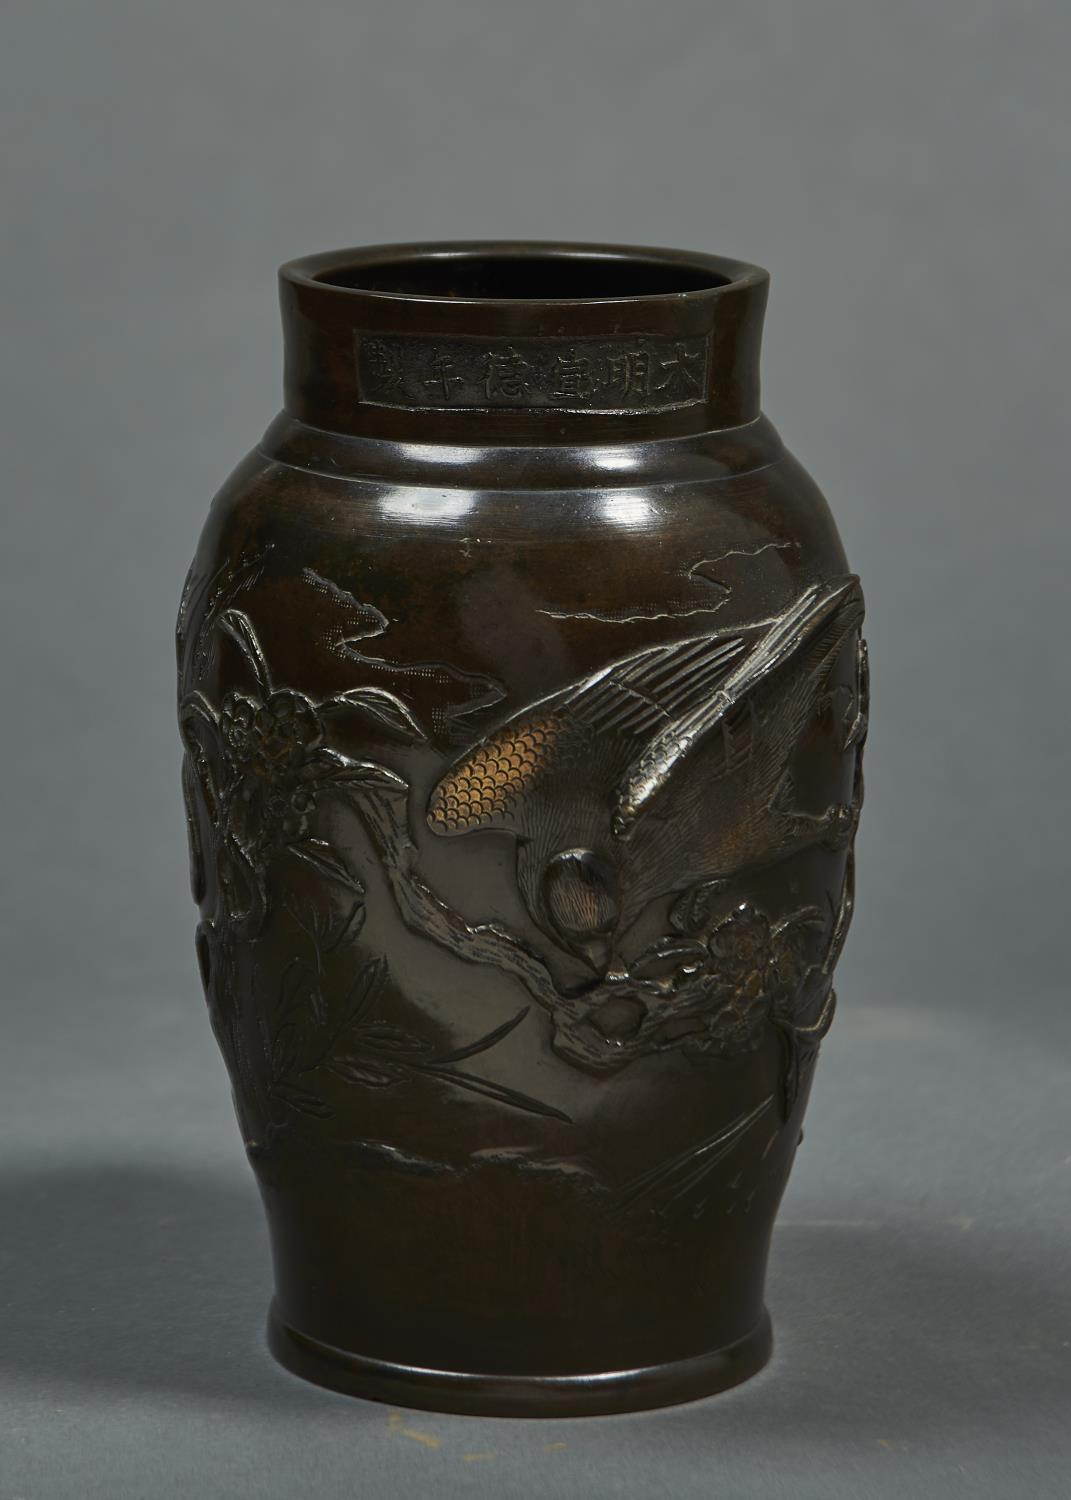 AN CHINESE BRONZE VASE, 19TH C, CAST WITH EAGLES AND A SERPENT, GOLDEN BROWN PATINA RUBBED IN